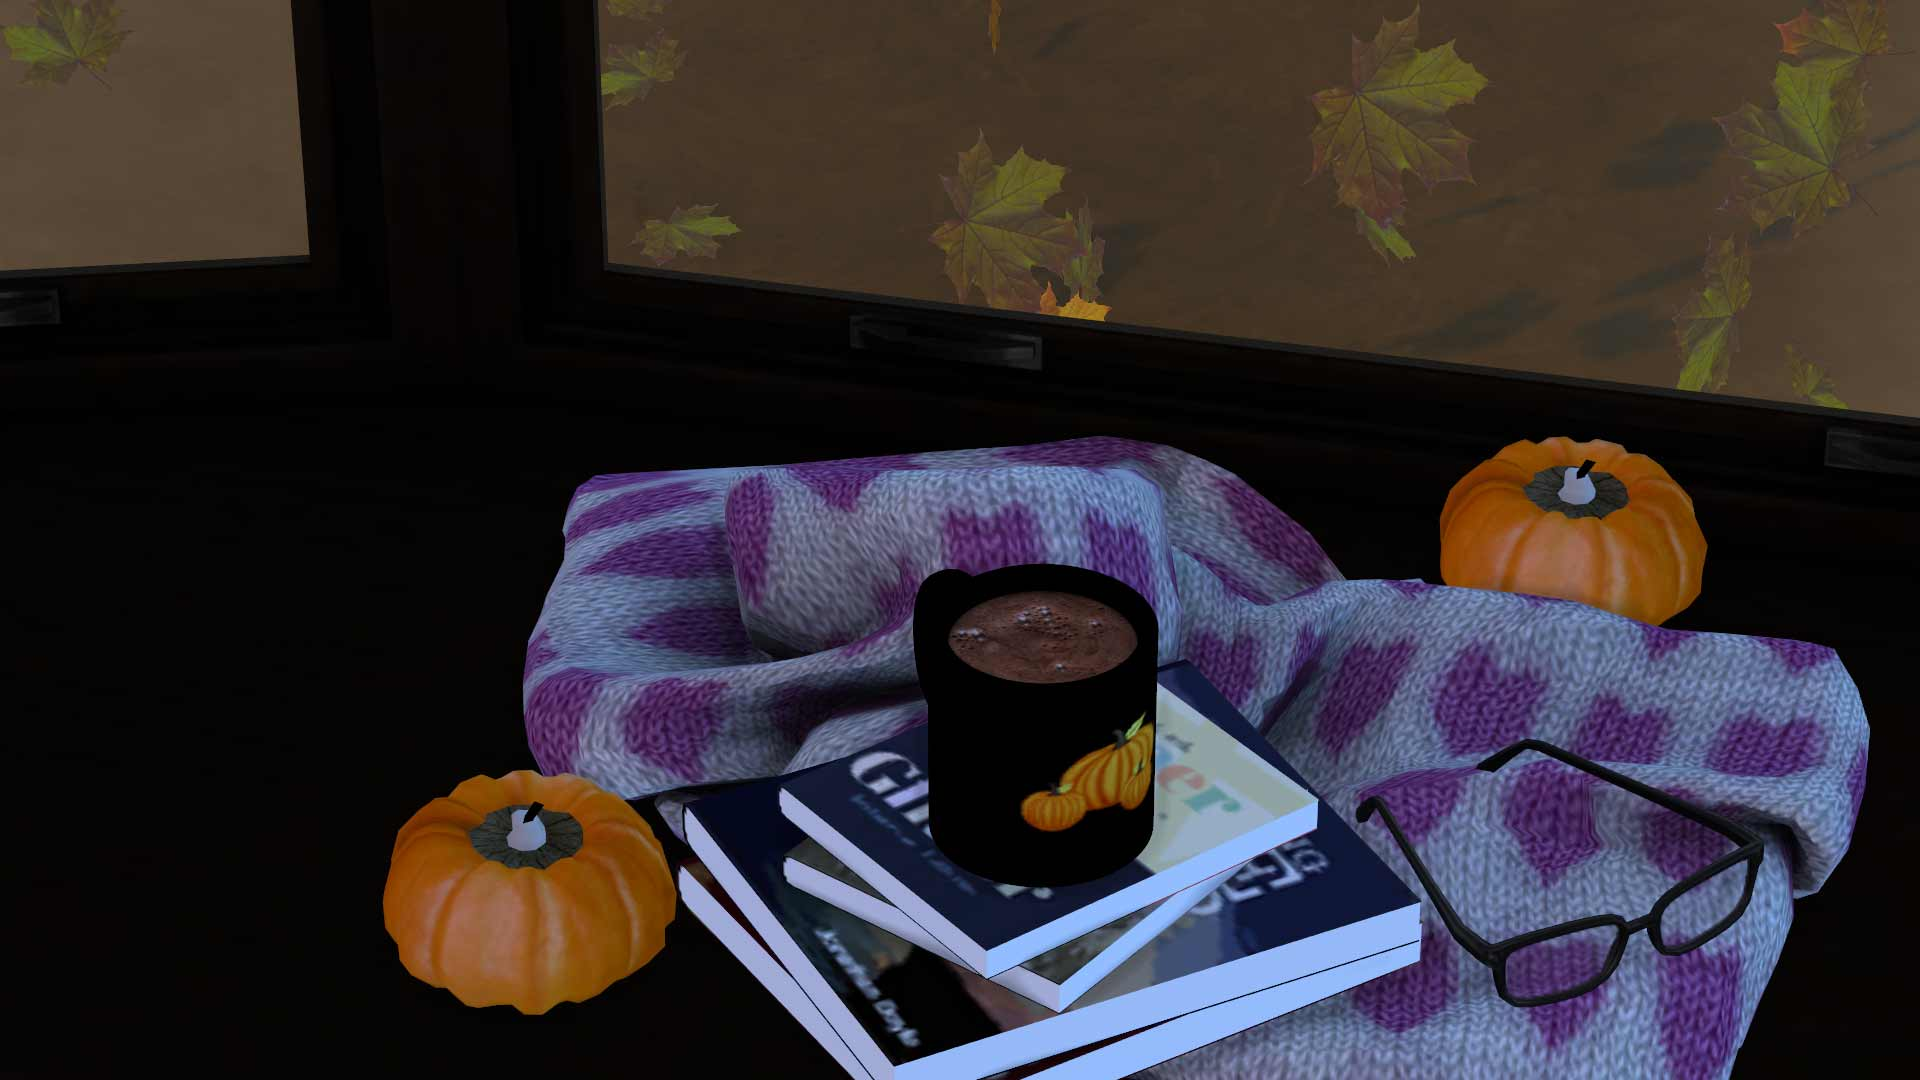 Autumn mugs hot chocolate, high quality sims 4 cc, sunkissedlilacs, free sims 4 furniture, sims 4 custom content,